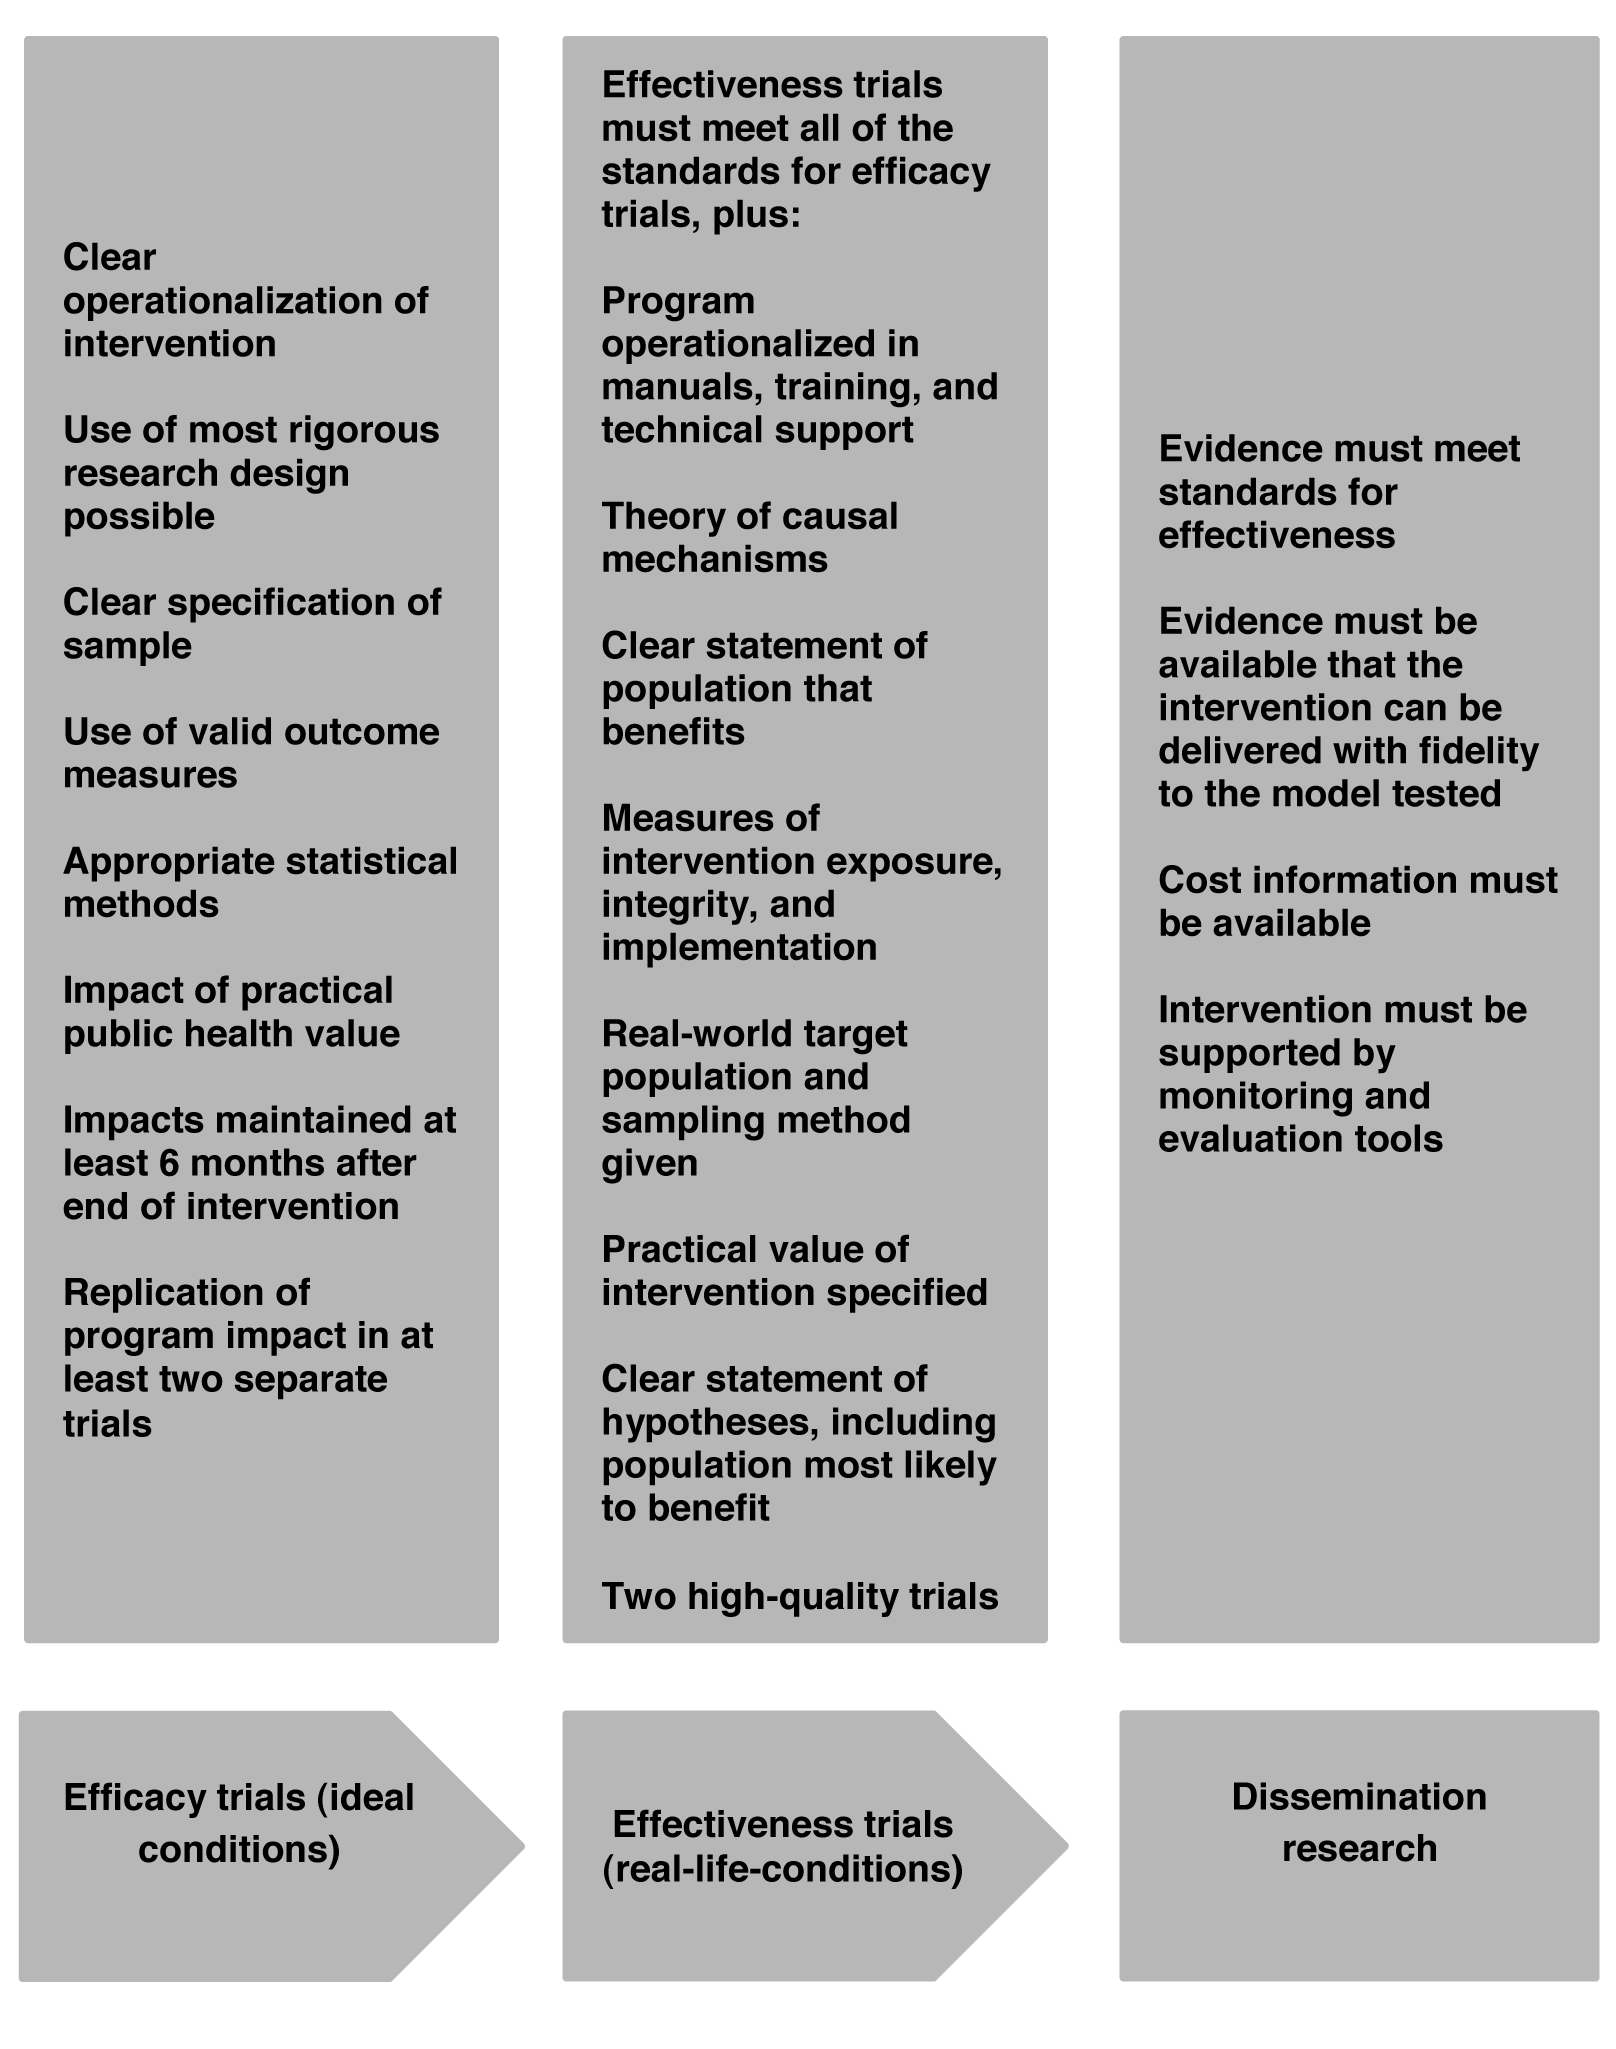 Research stages and standards.